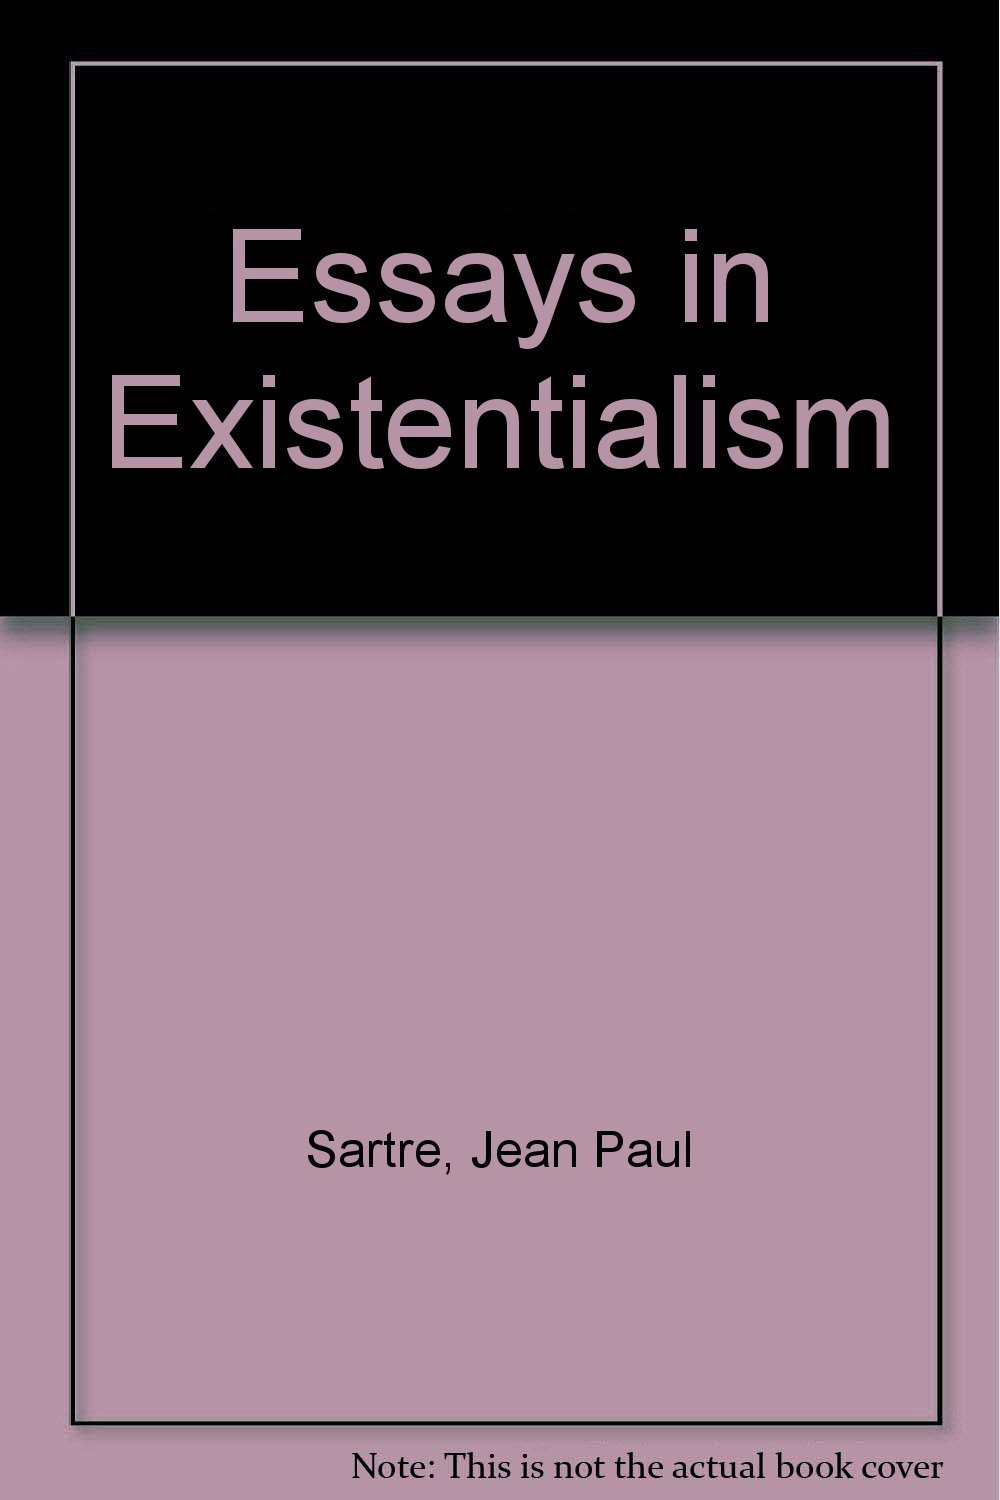 002 61qllswwwgl Essay Example Essays In Outstanding Existentialism Pdf Sartre Full